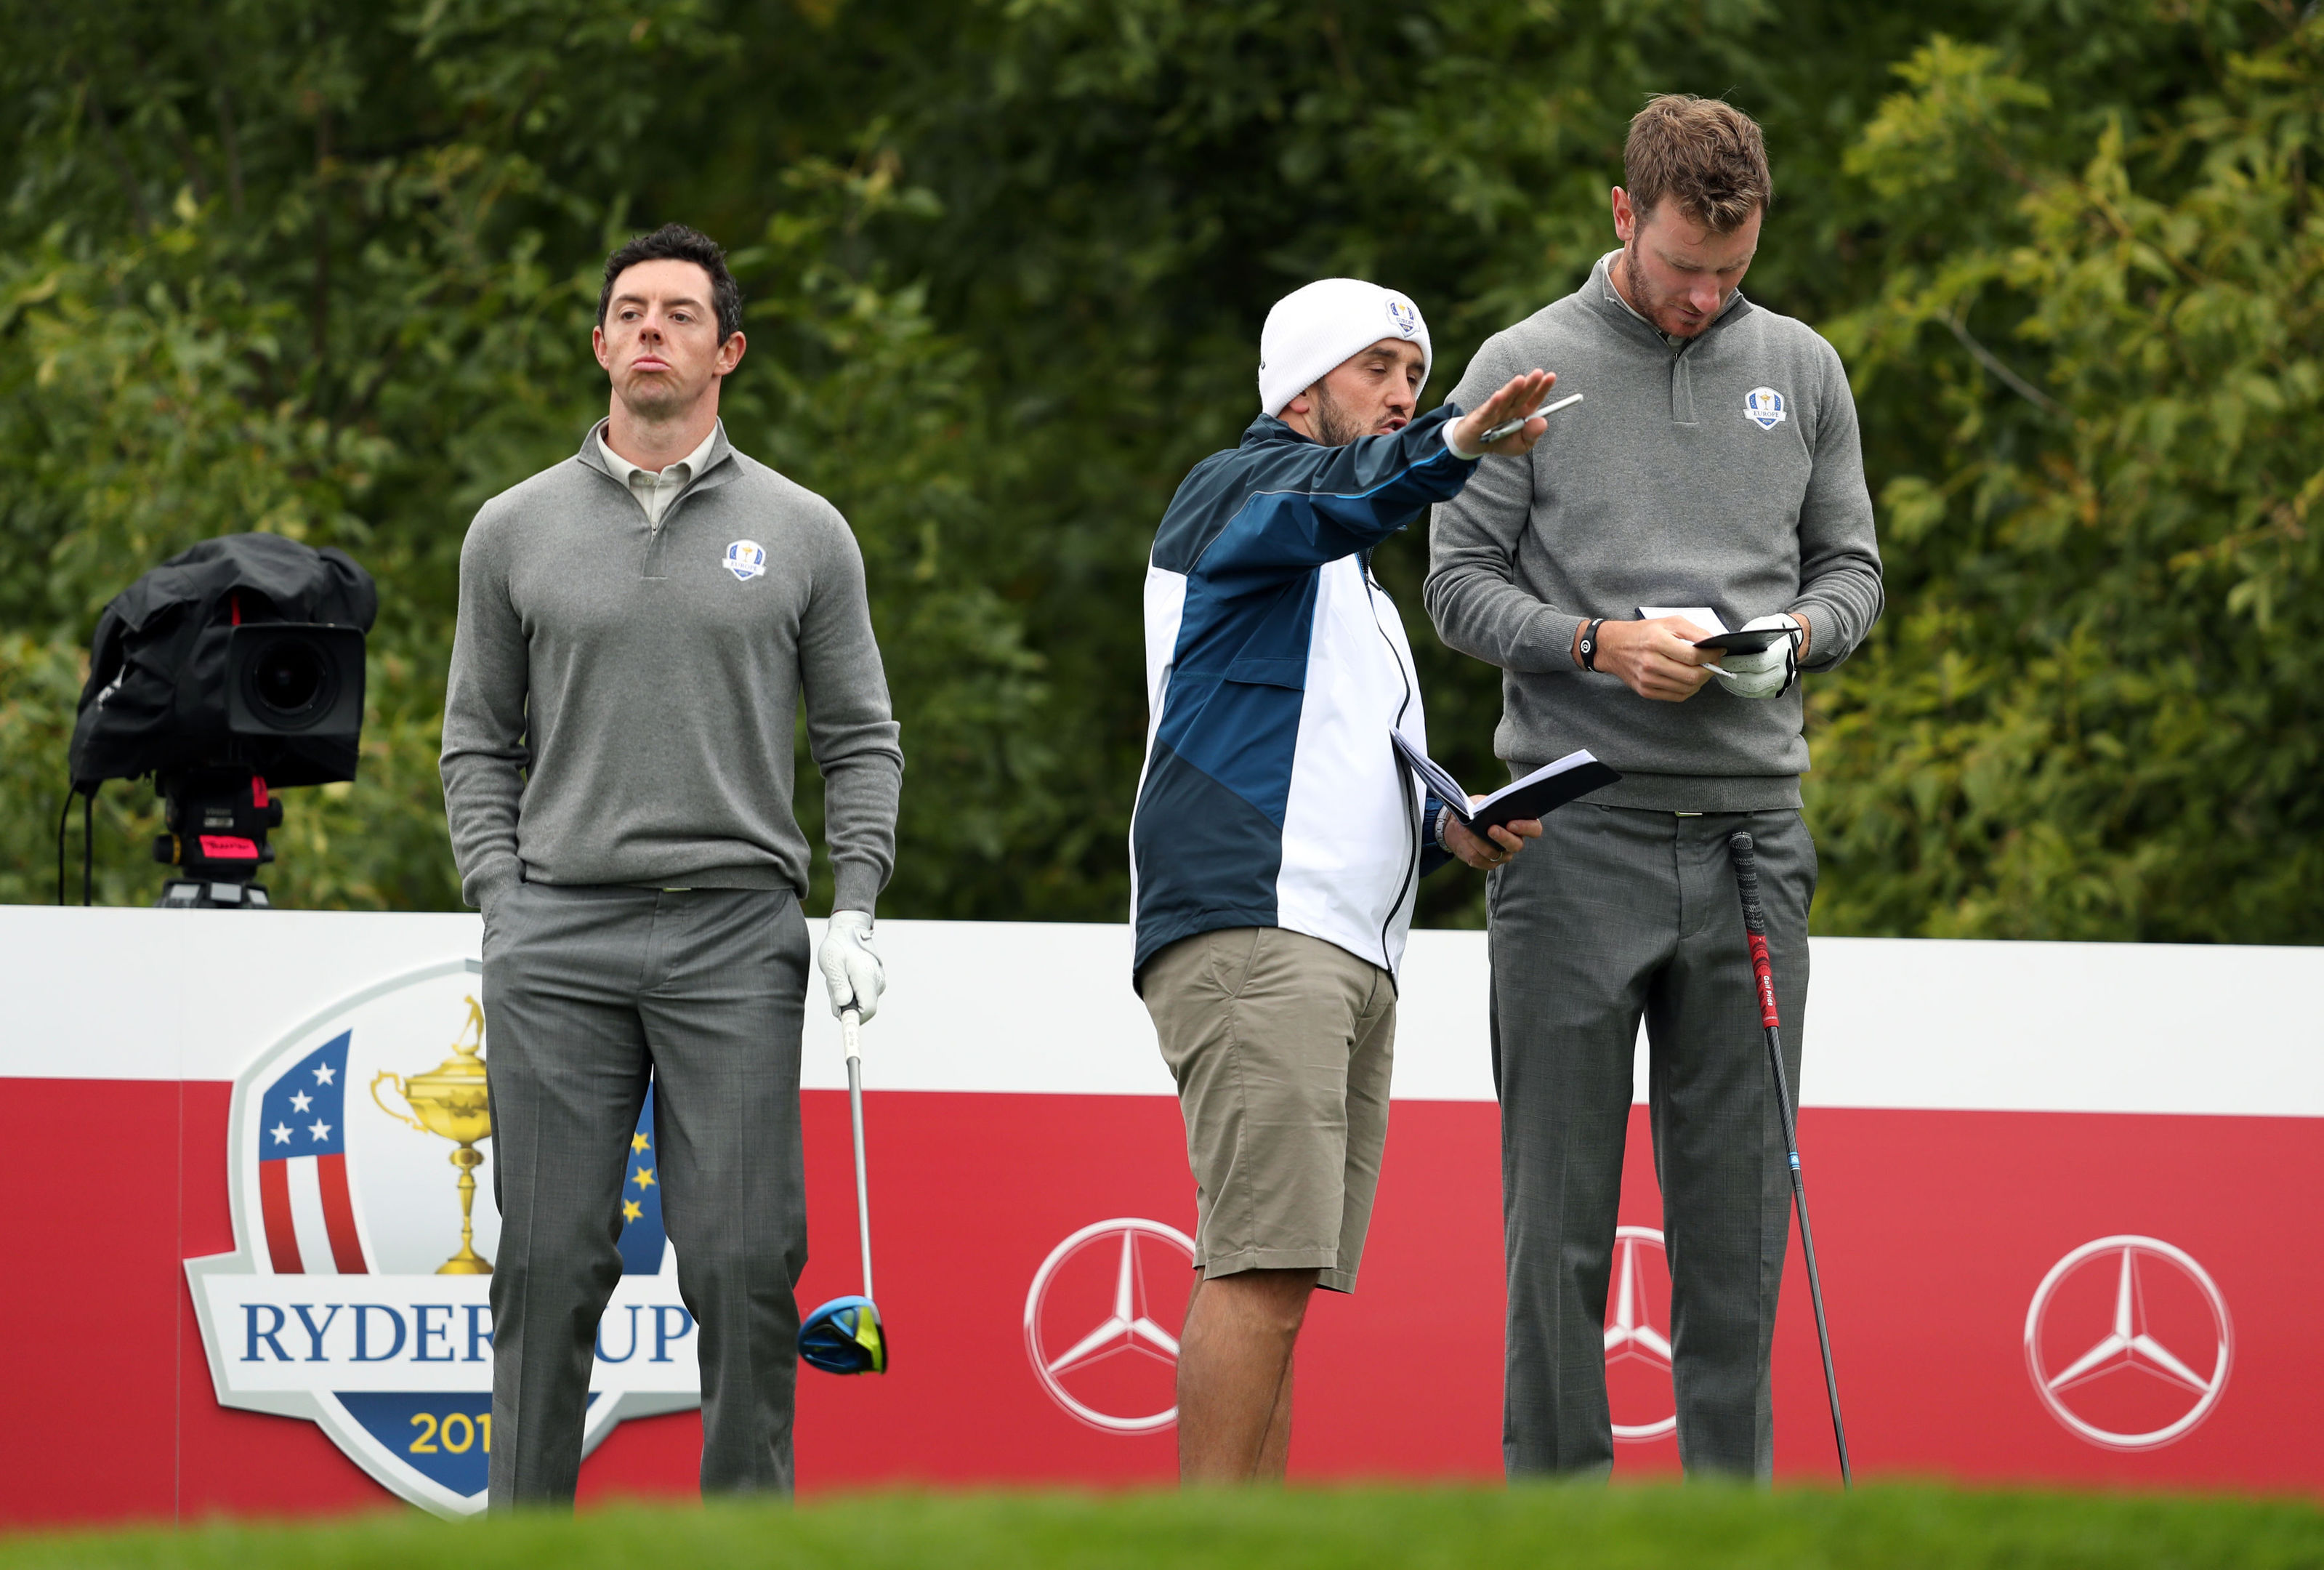 Chris Wood takes directions from Scottish caddie Mark Crane while Rory McIlroy waits during practice at Hazeltine.